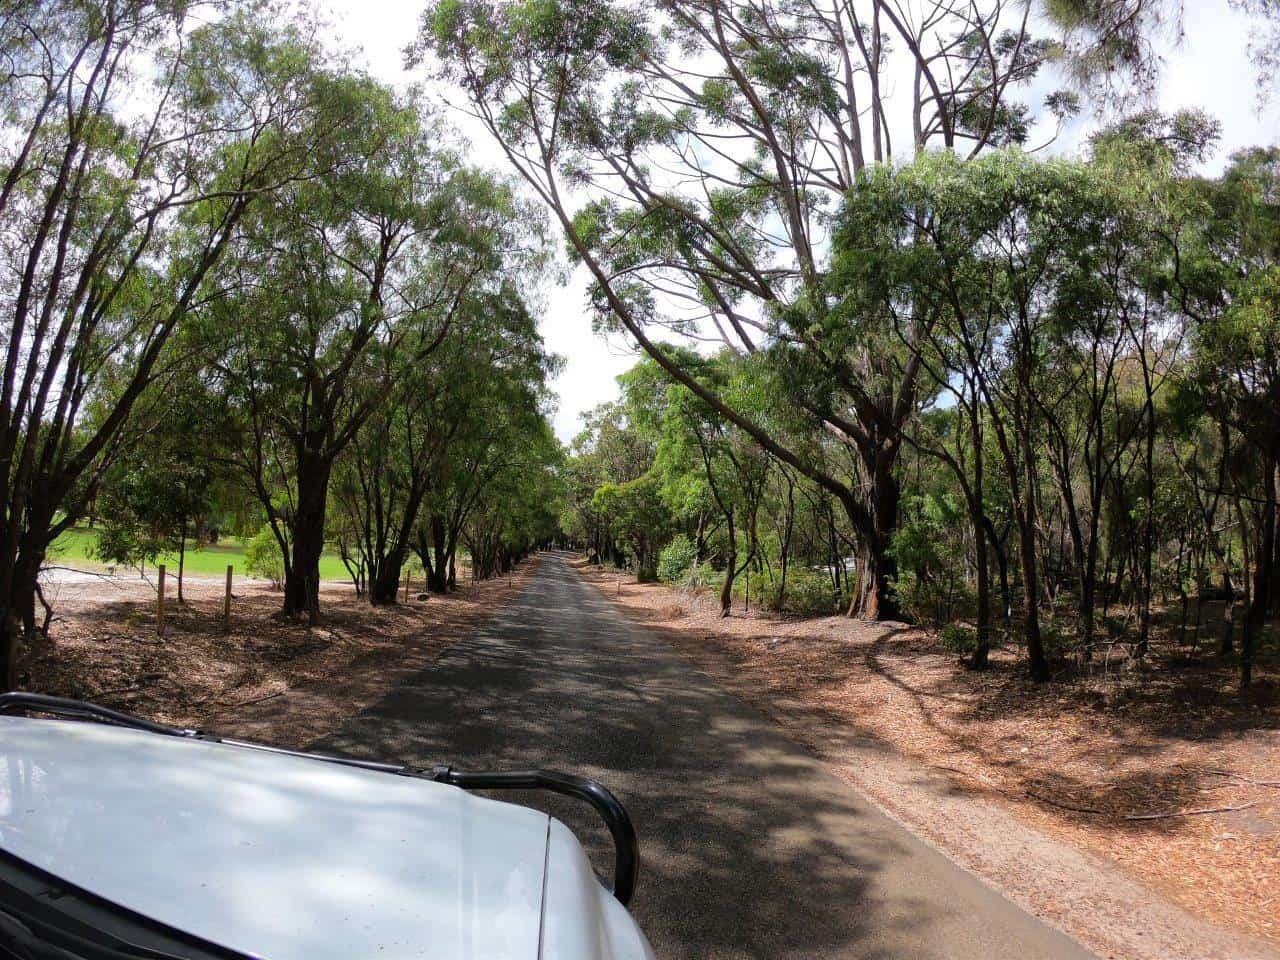 On the way to Rest Point Caravan Park in Walpole